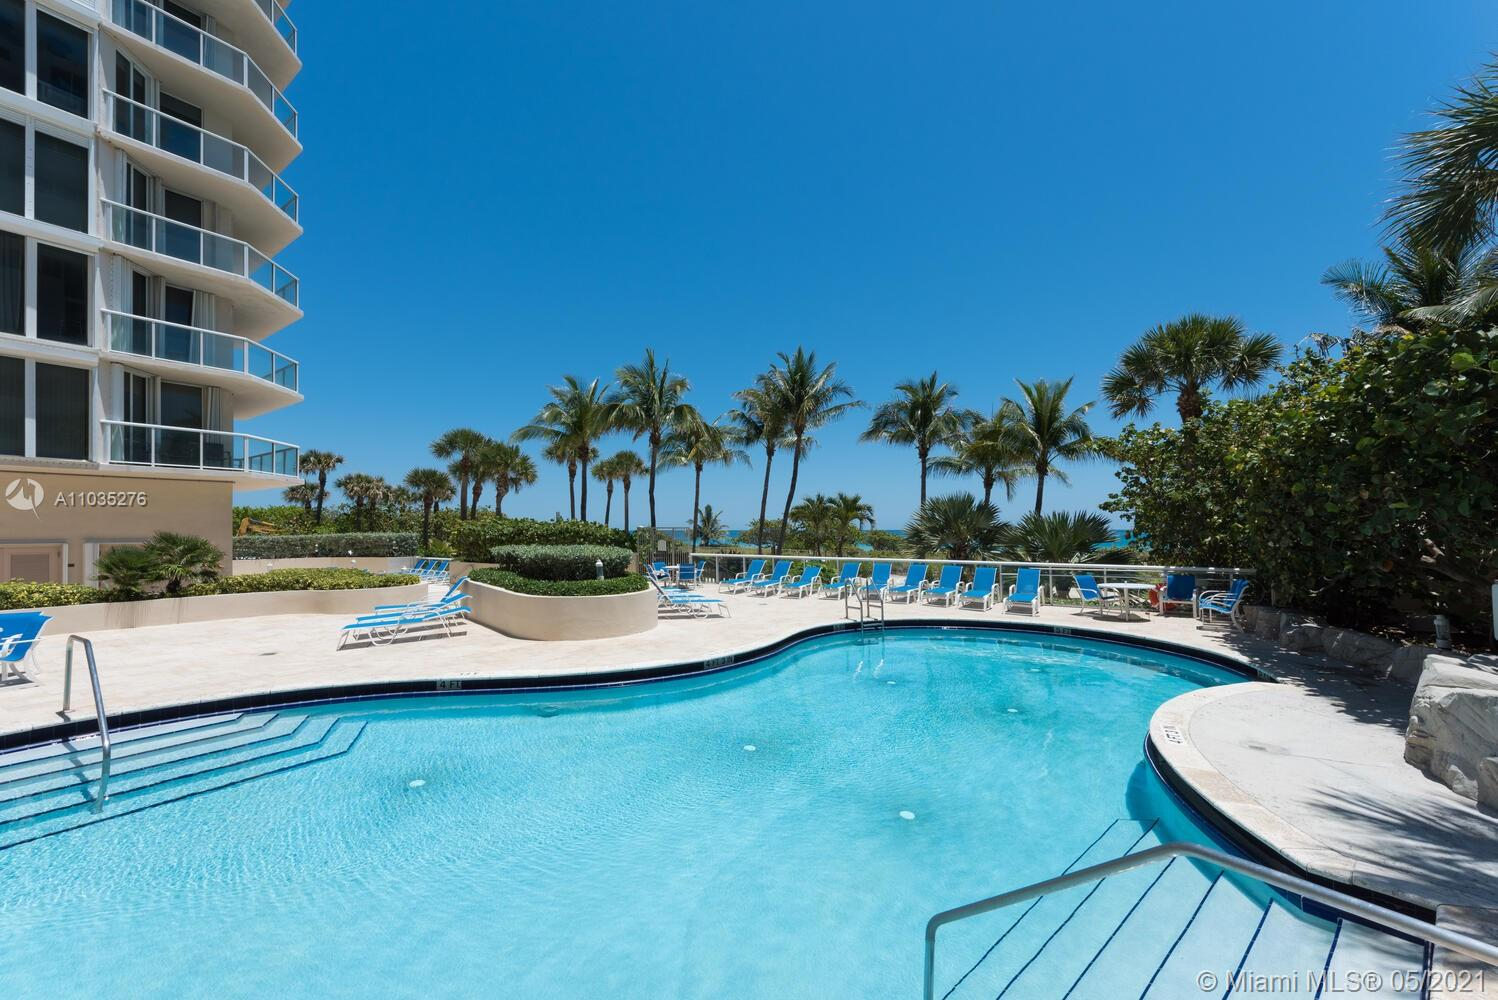 Photo of 8925 Collins Ave #4F, Surfside, Florida, 33154 - Virtually staged bedroom.